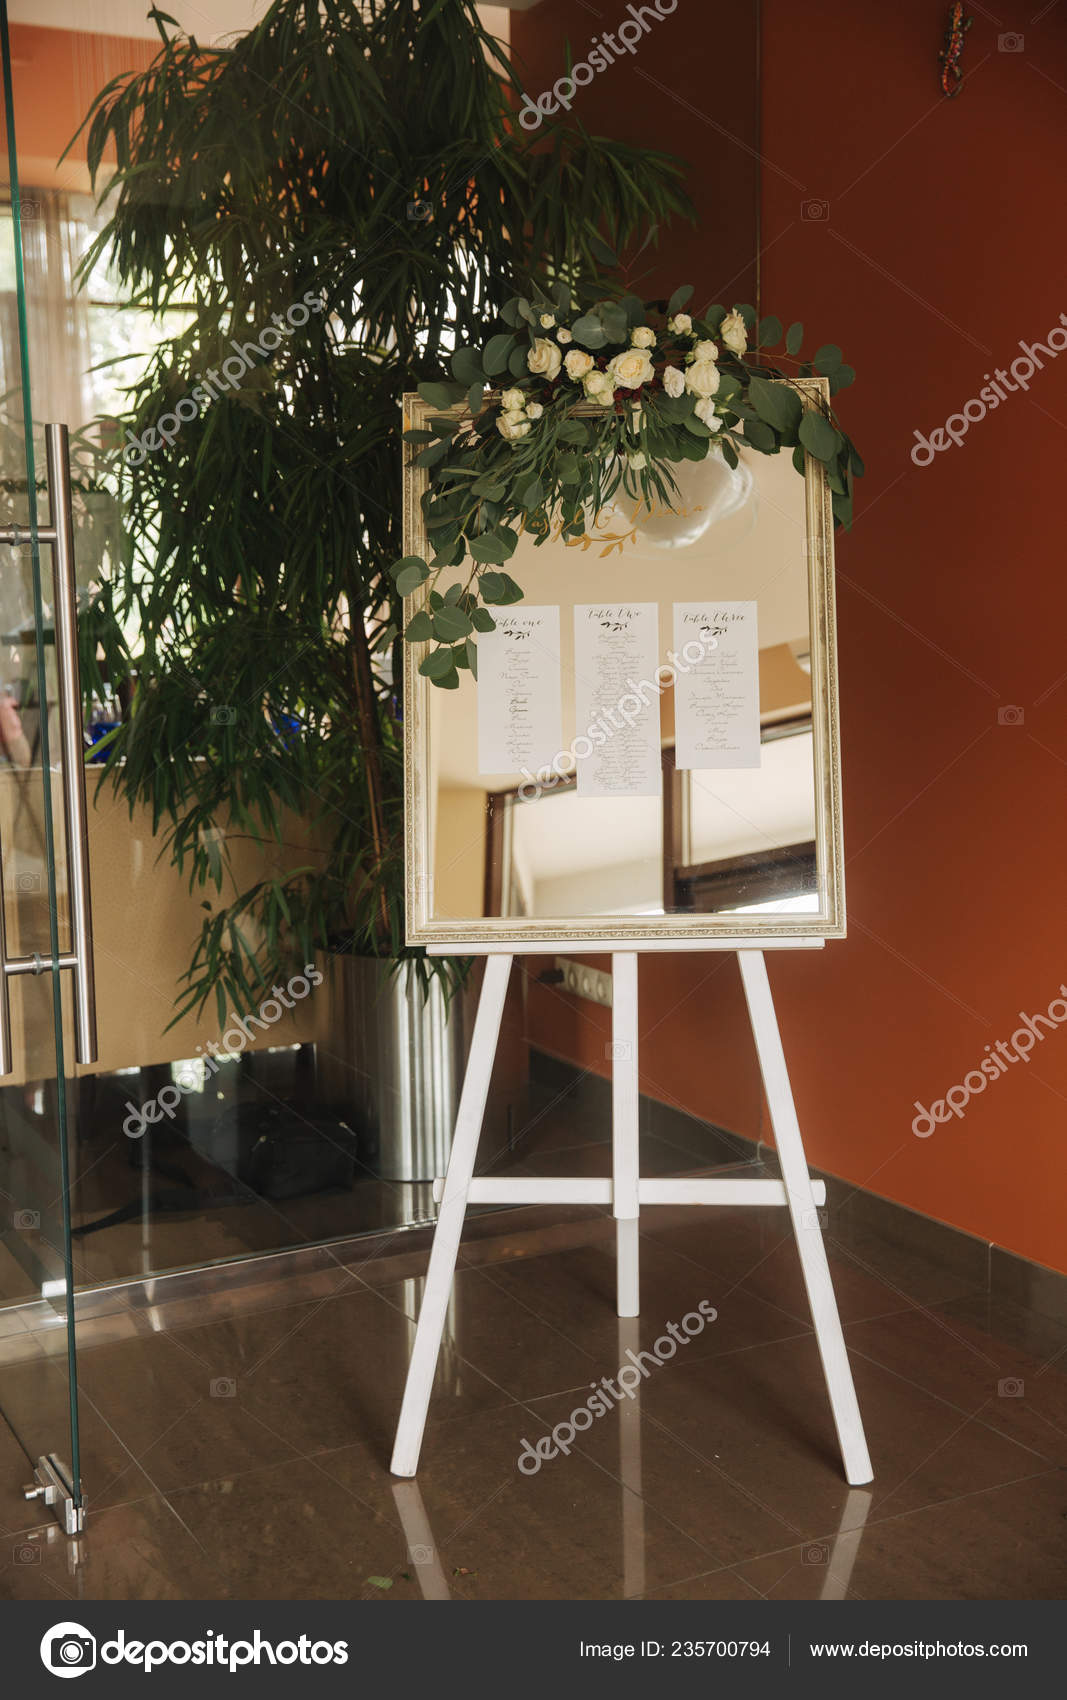 Elements Of Wedding Decoration In Restaurant Green And Blue Color Stock Photo C Gritsiv Foto 235700794